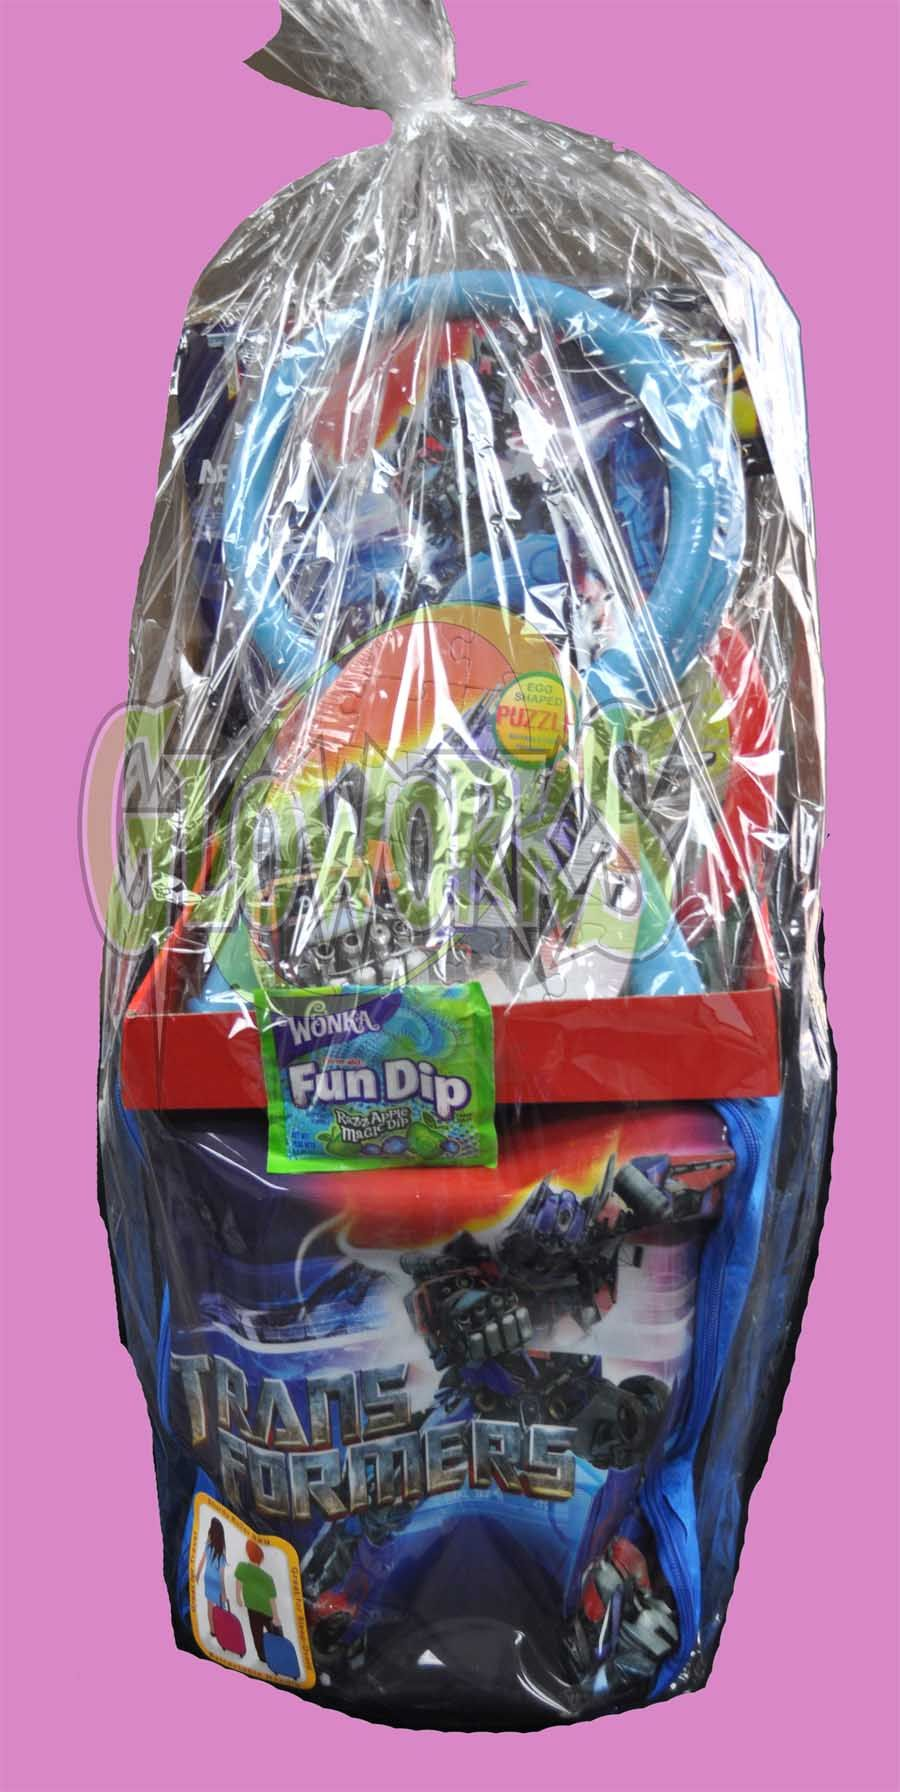 Transformers easter basket easter pinterest transformers easter basket negle Images